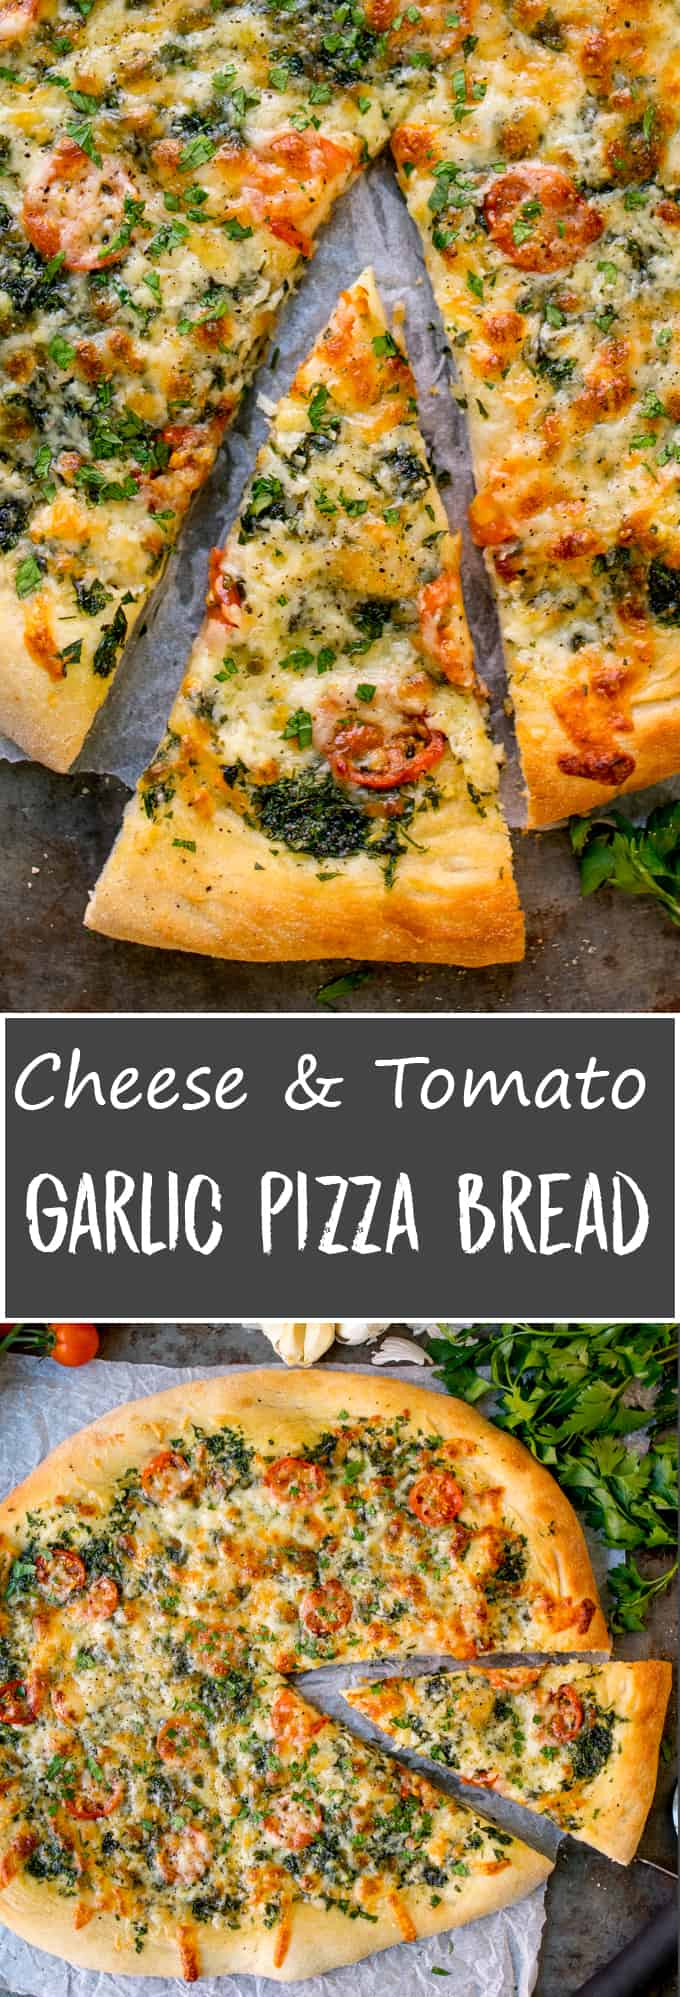 Homemade Cheese and Tomato Garlic Pizza Bread - a crisp dough with that perfect chewy interior, loaded with garlic, tomatoes and two types of cheese!